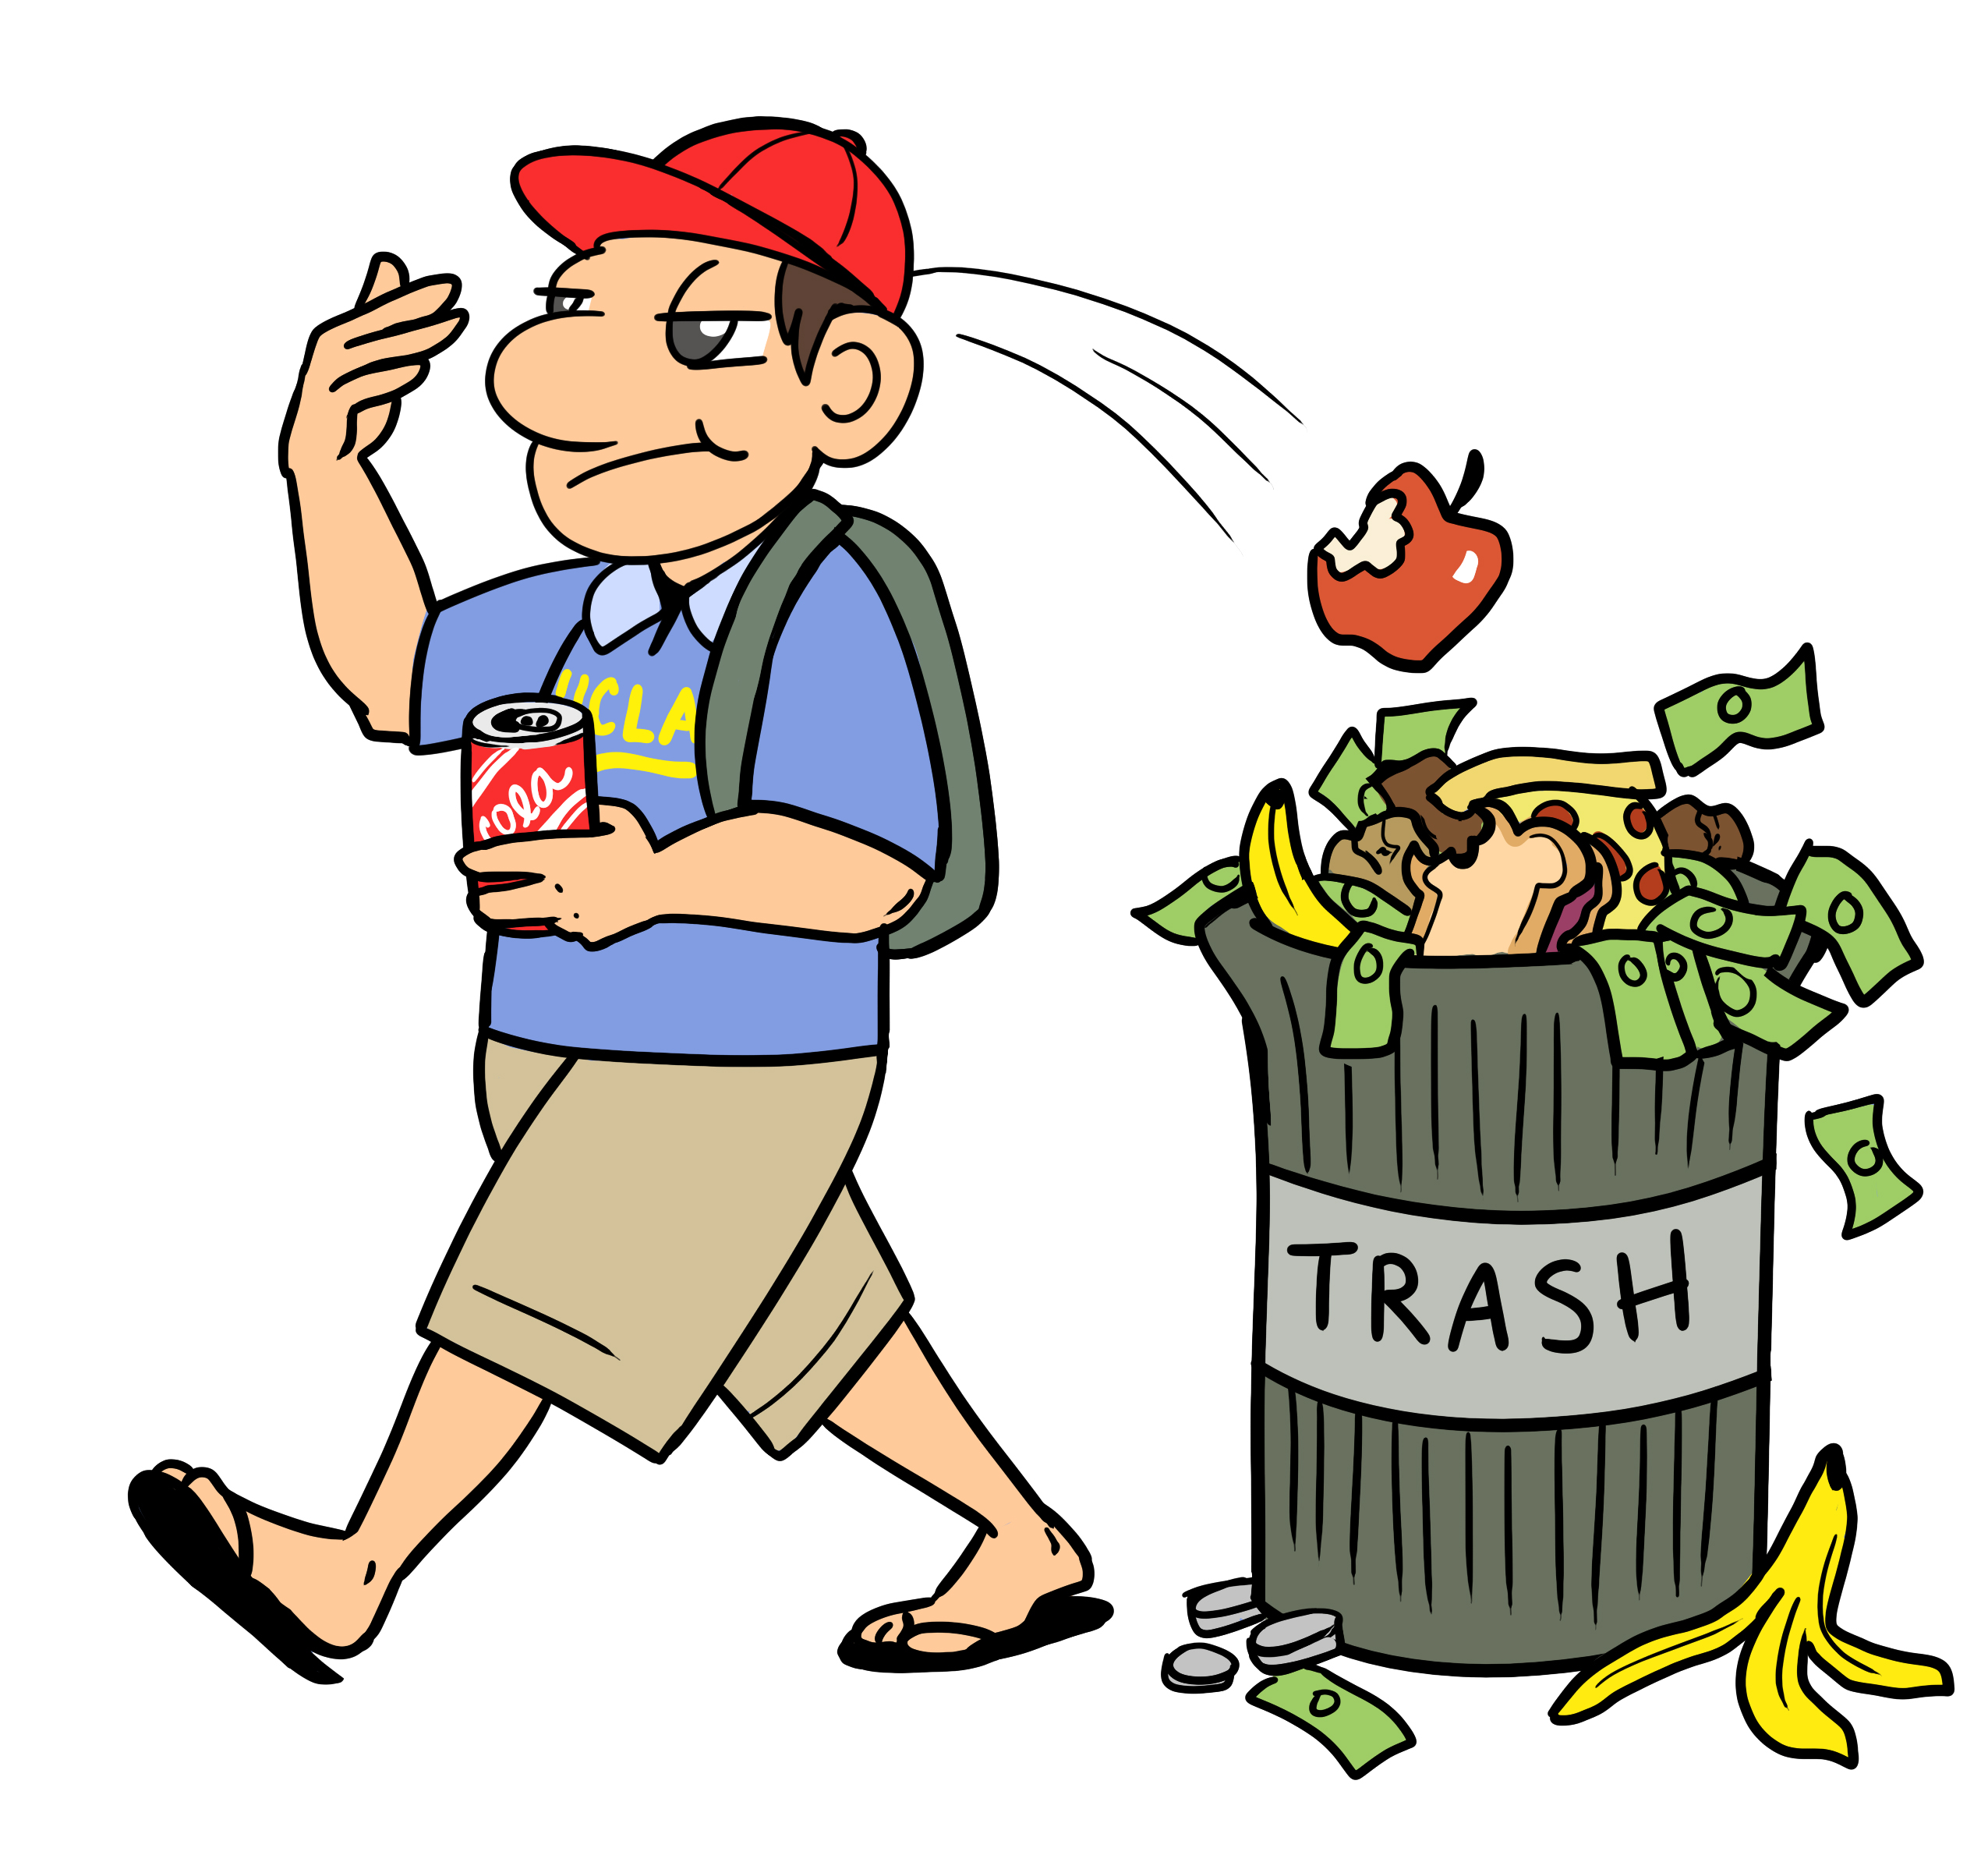 Garbage clipart.  collection of throwing